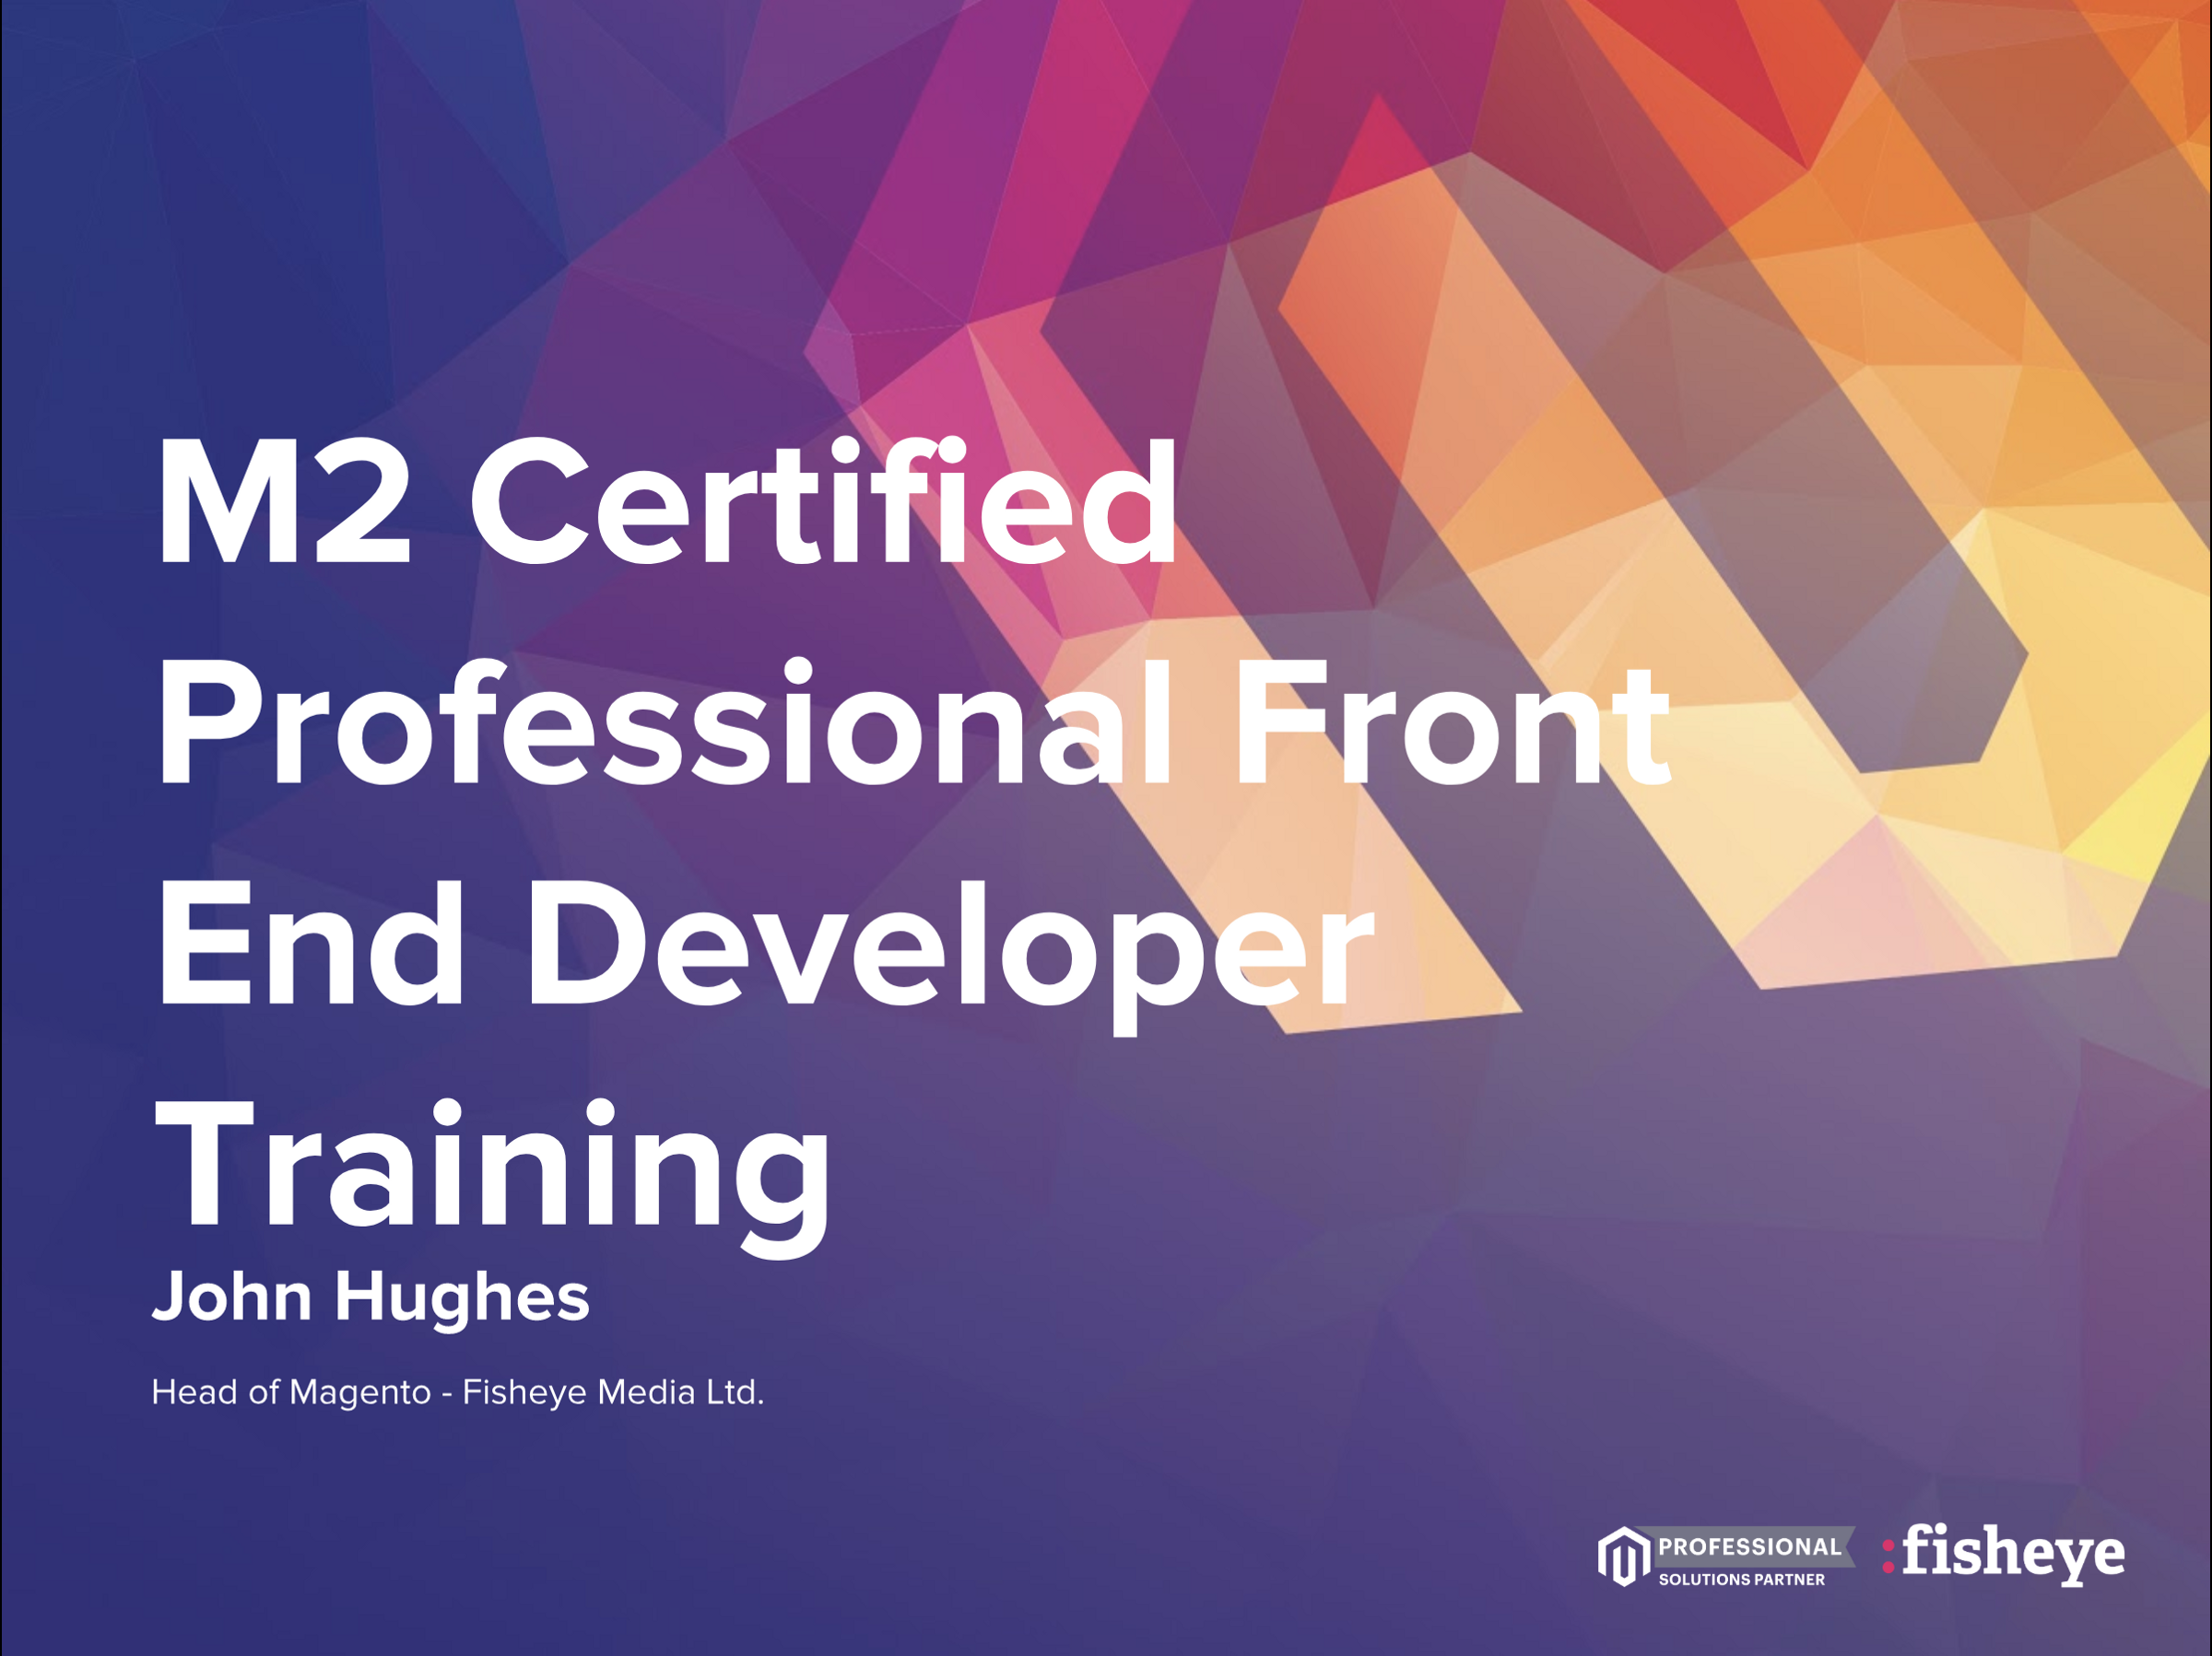 M2 Certified Professional Front End Developer Training